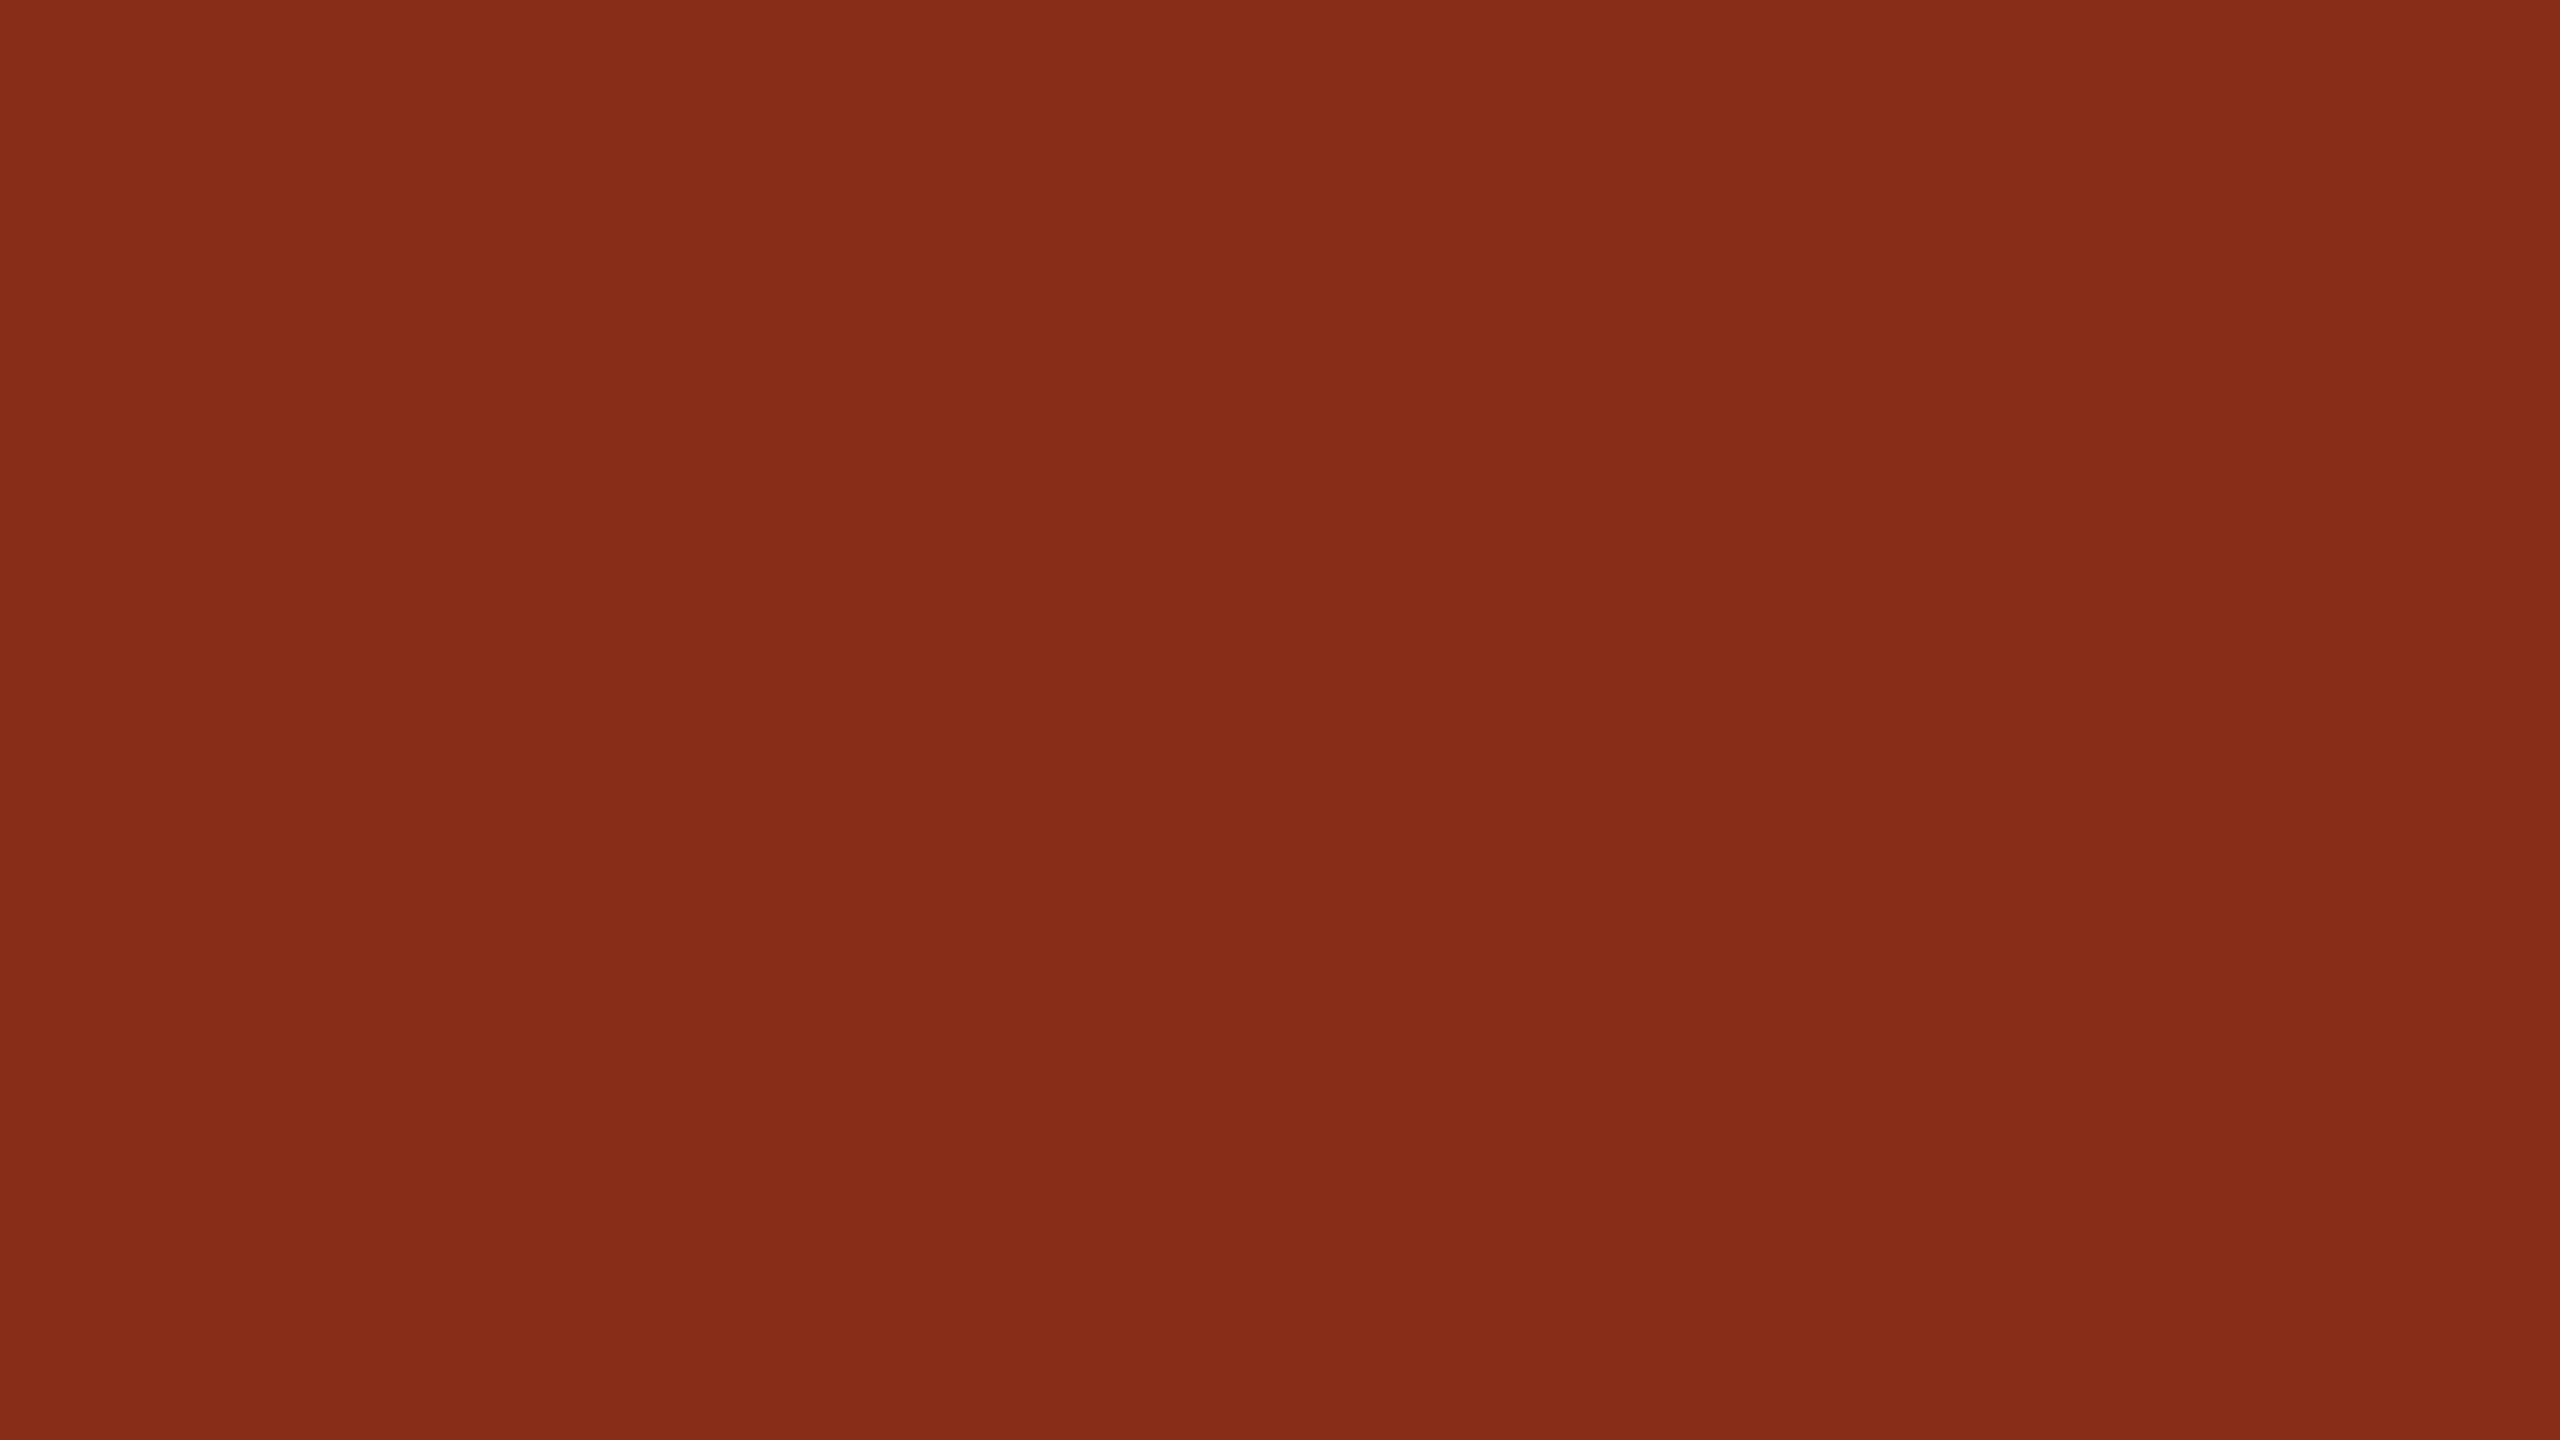 2560x1440 Sienna Solid Color Background